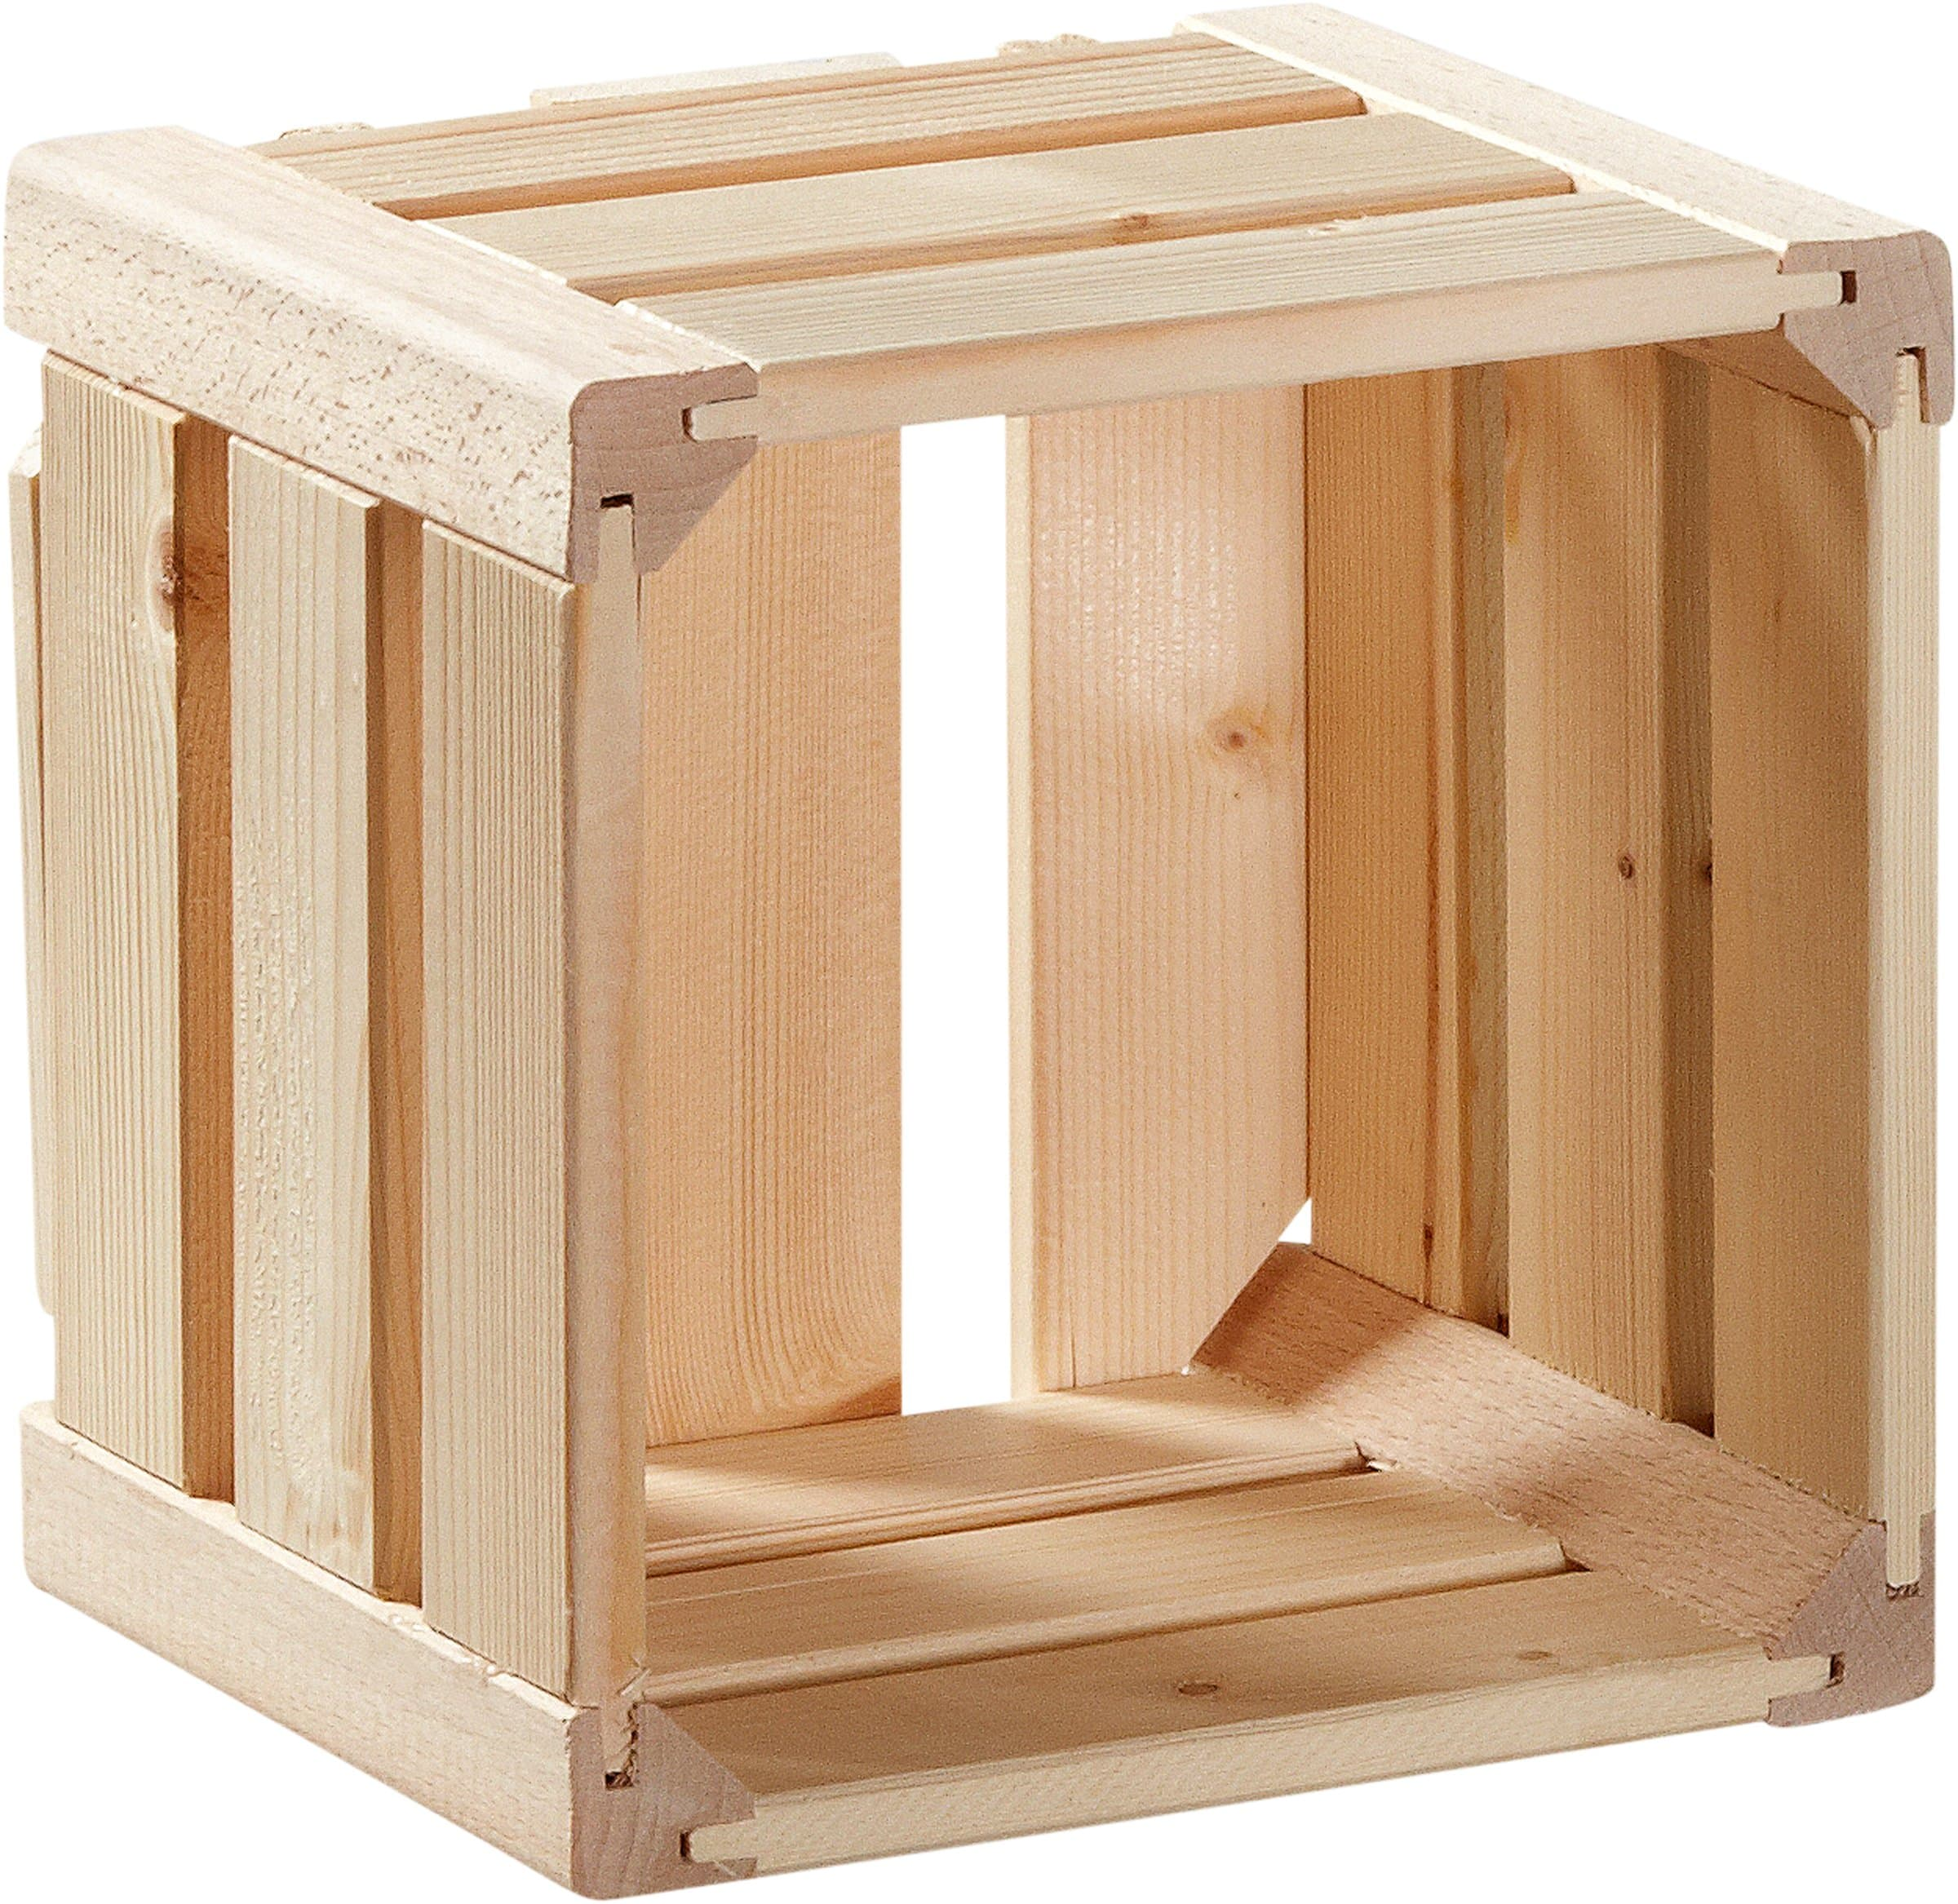 Holzzollhaus holzharasse b1 8 migros - Holzkisten mobel ...